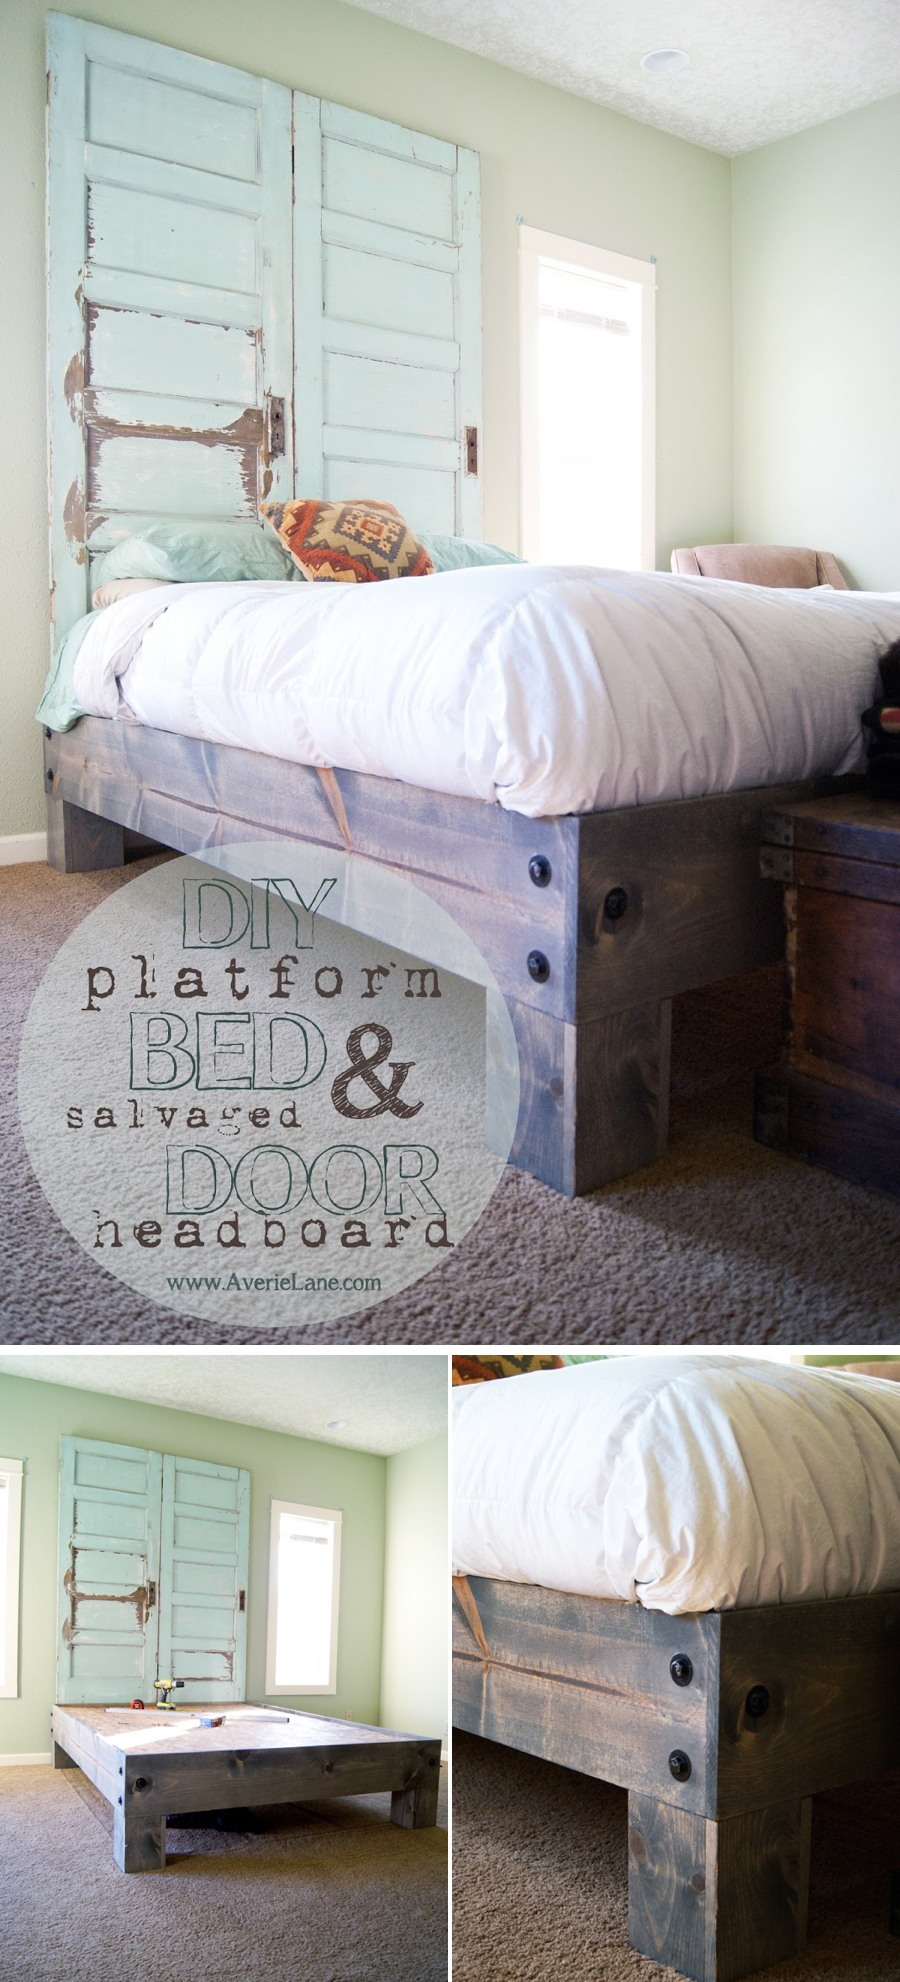 DIY Platform Bed U0026 Salvaged Door Headboard